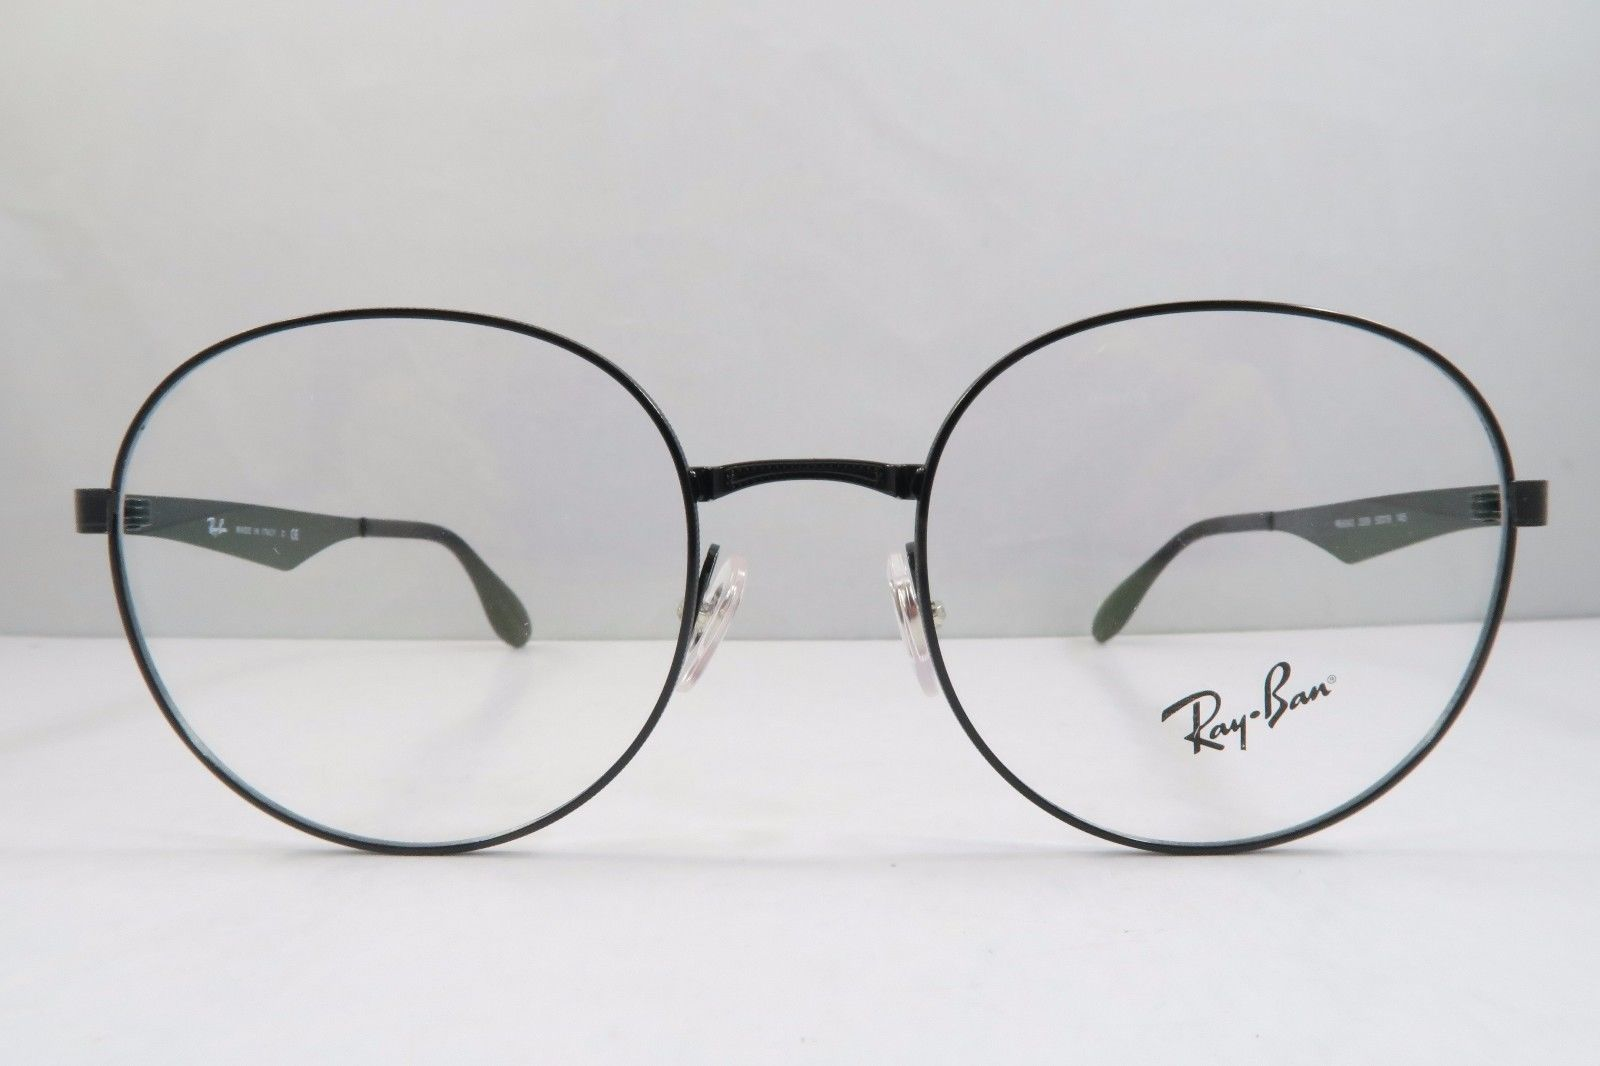 9897b56d45 S l1600. S l1600. Previous. Ray-Ban RB 6343 2509 Round Shiny Black New  Authentic Eyeglasses 47mm ...